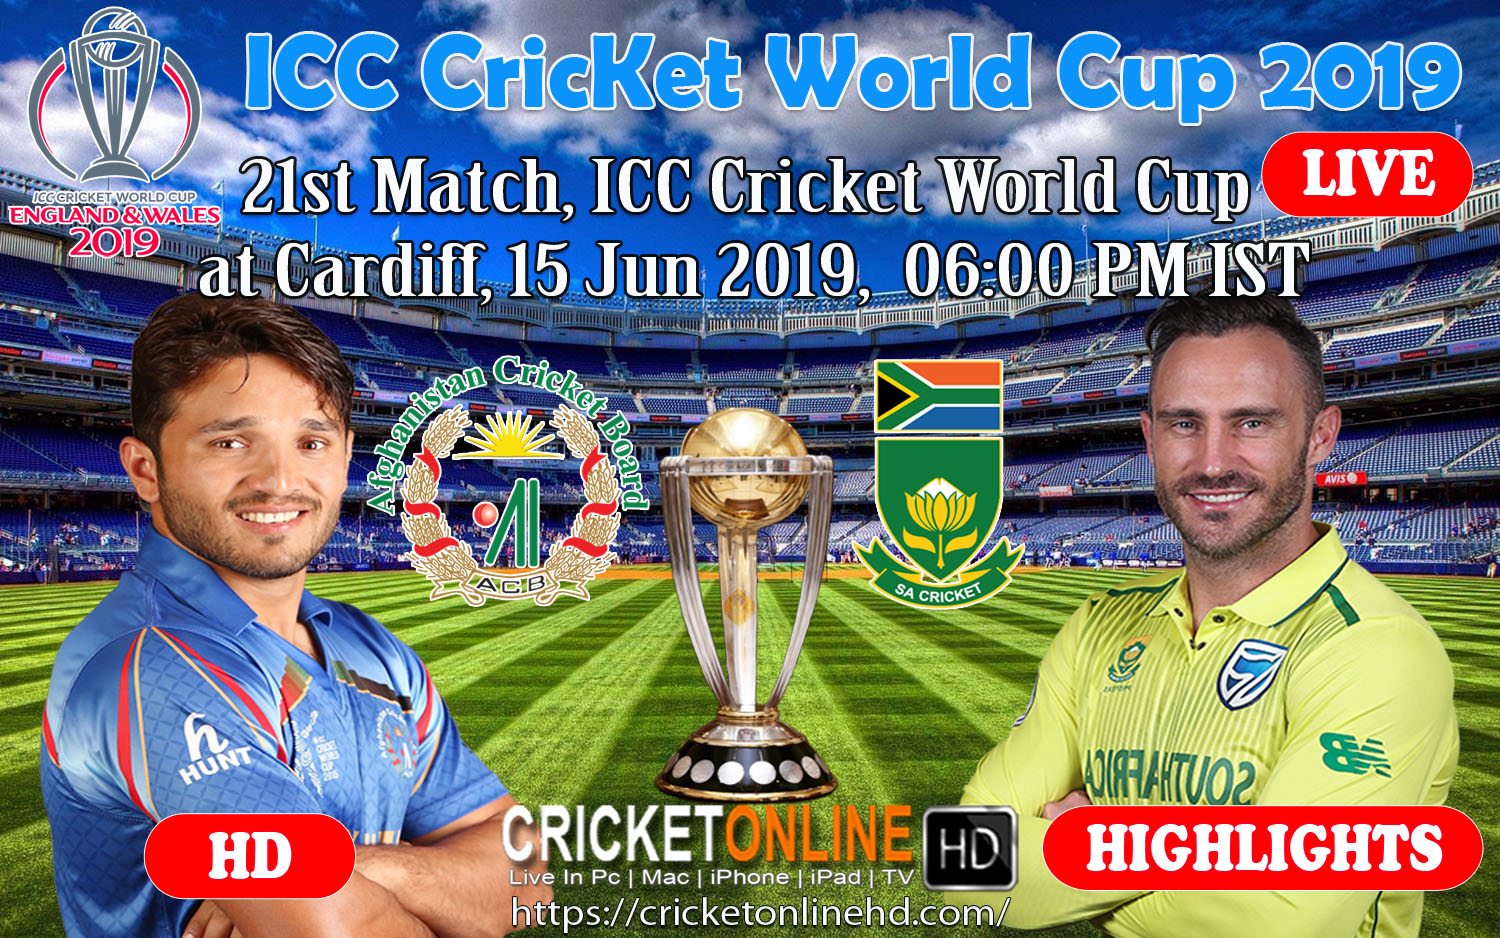 ICC Cricket World Cup 2019 Streaming HD South Africa Vs Afghanistan 21st Match At Cardiff, Jun 15